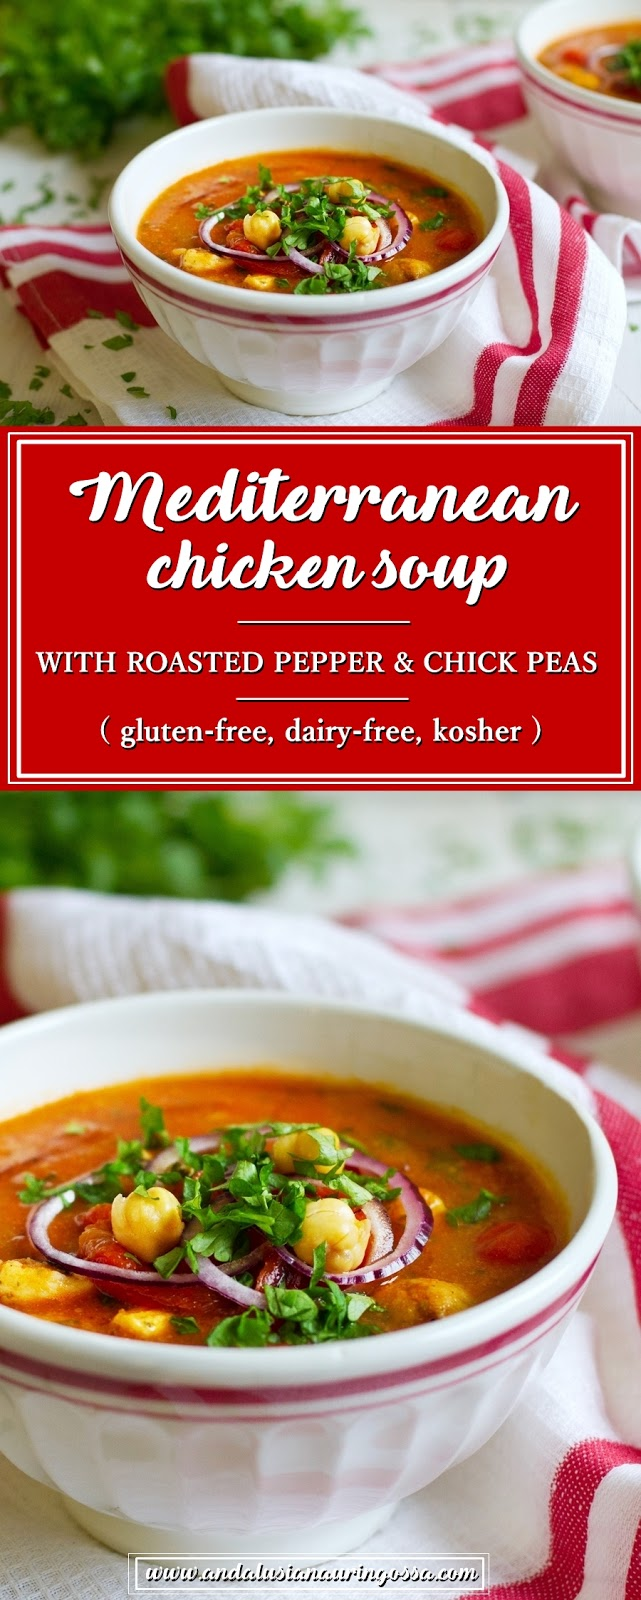 Andalusian auringossa_foodblog_mediterranean chicken soup_roasted pepper_chickpeas_glutenfree_kosher_vegan_PIN ME